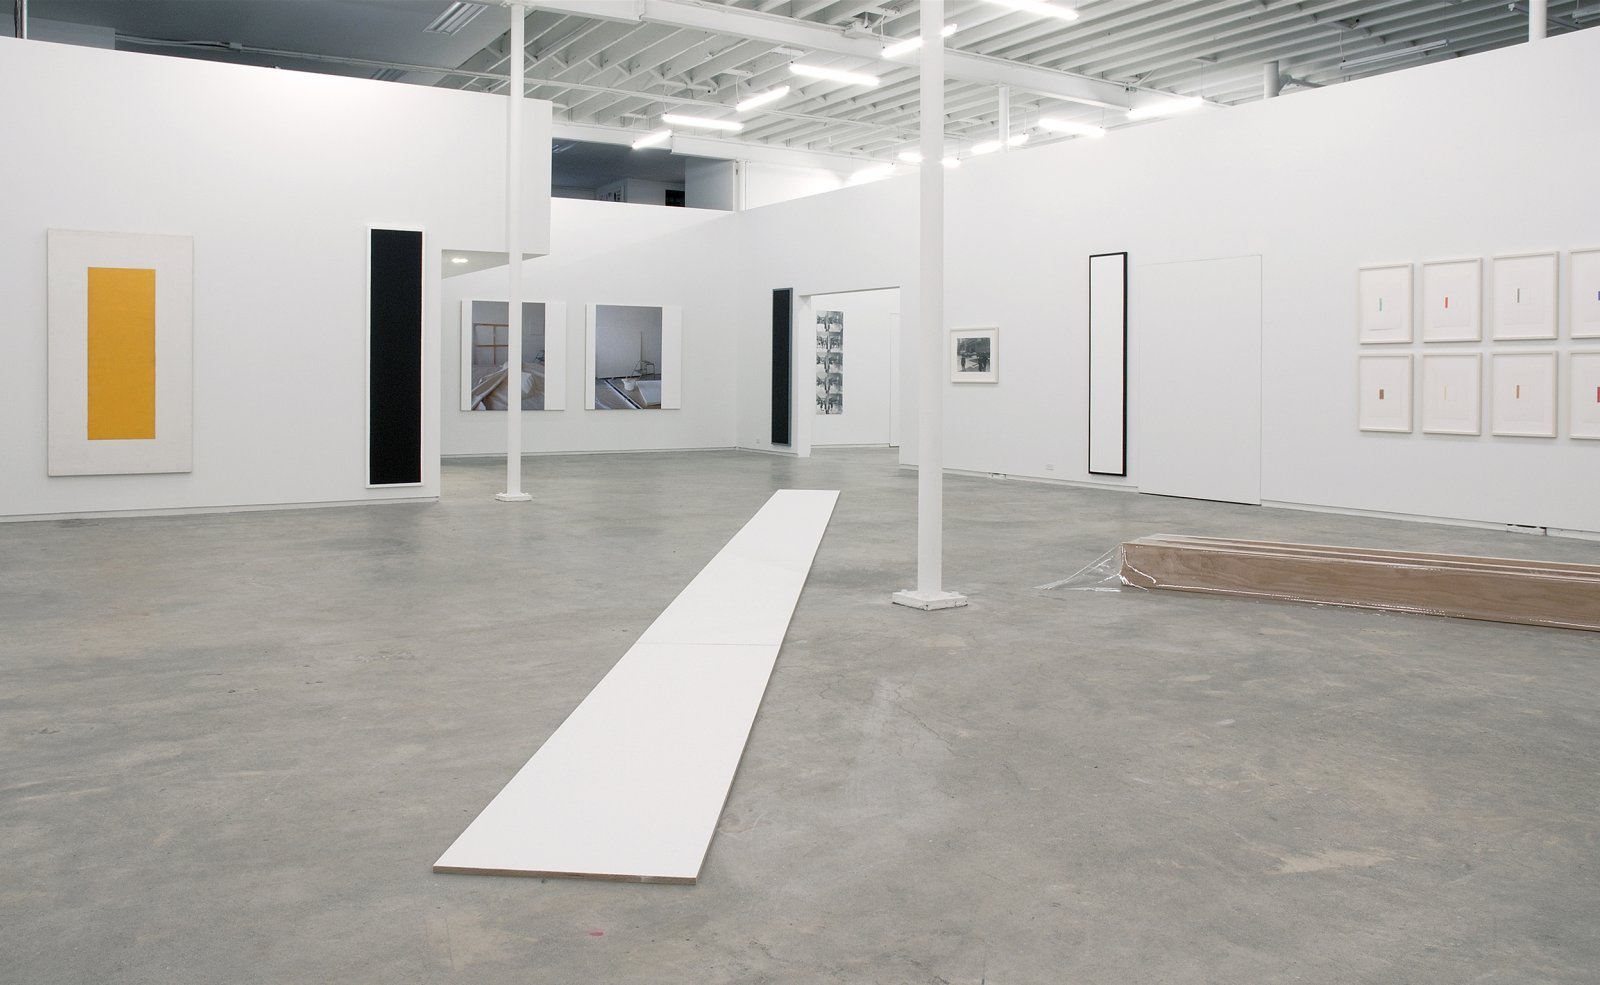 ​Ian Wallace, installation view, Catriona Jeffries, 2007 by Ian Wallace